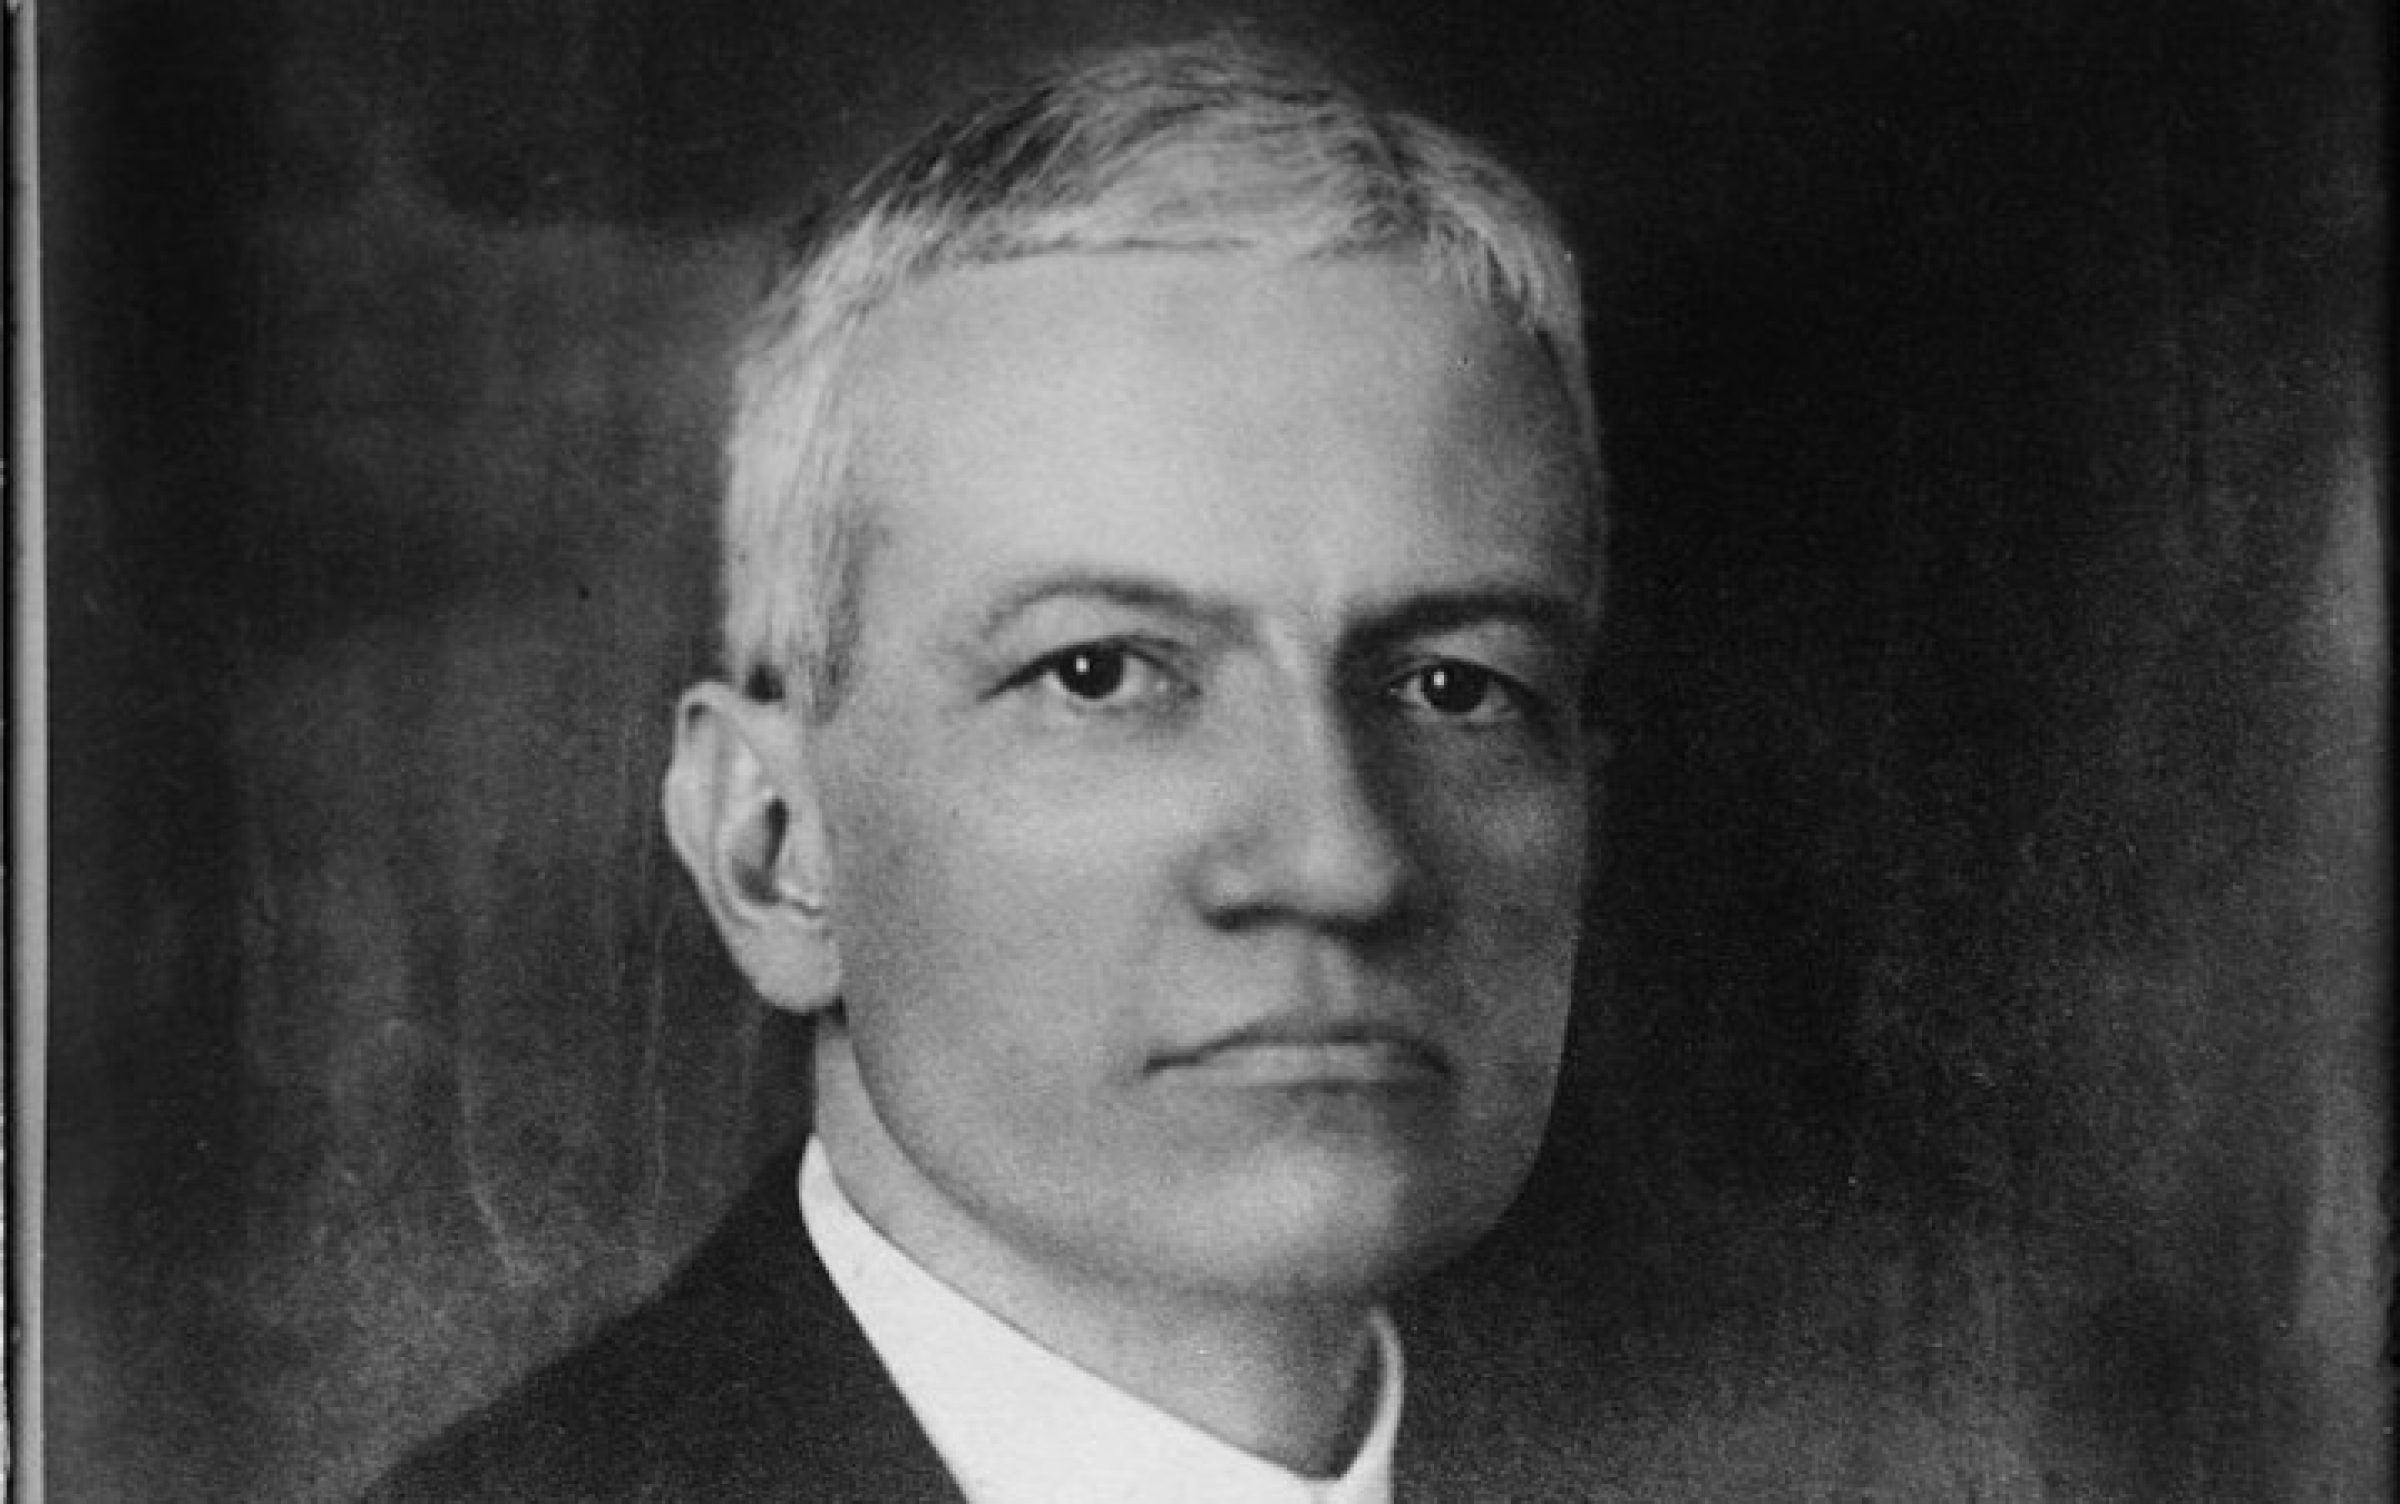 Russell Cornell Leffingwell c.1913. Credit: Bain / Library of Congress/ Wikimedia Commons.